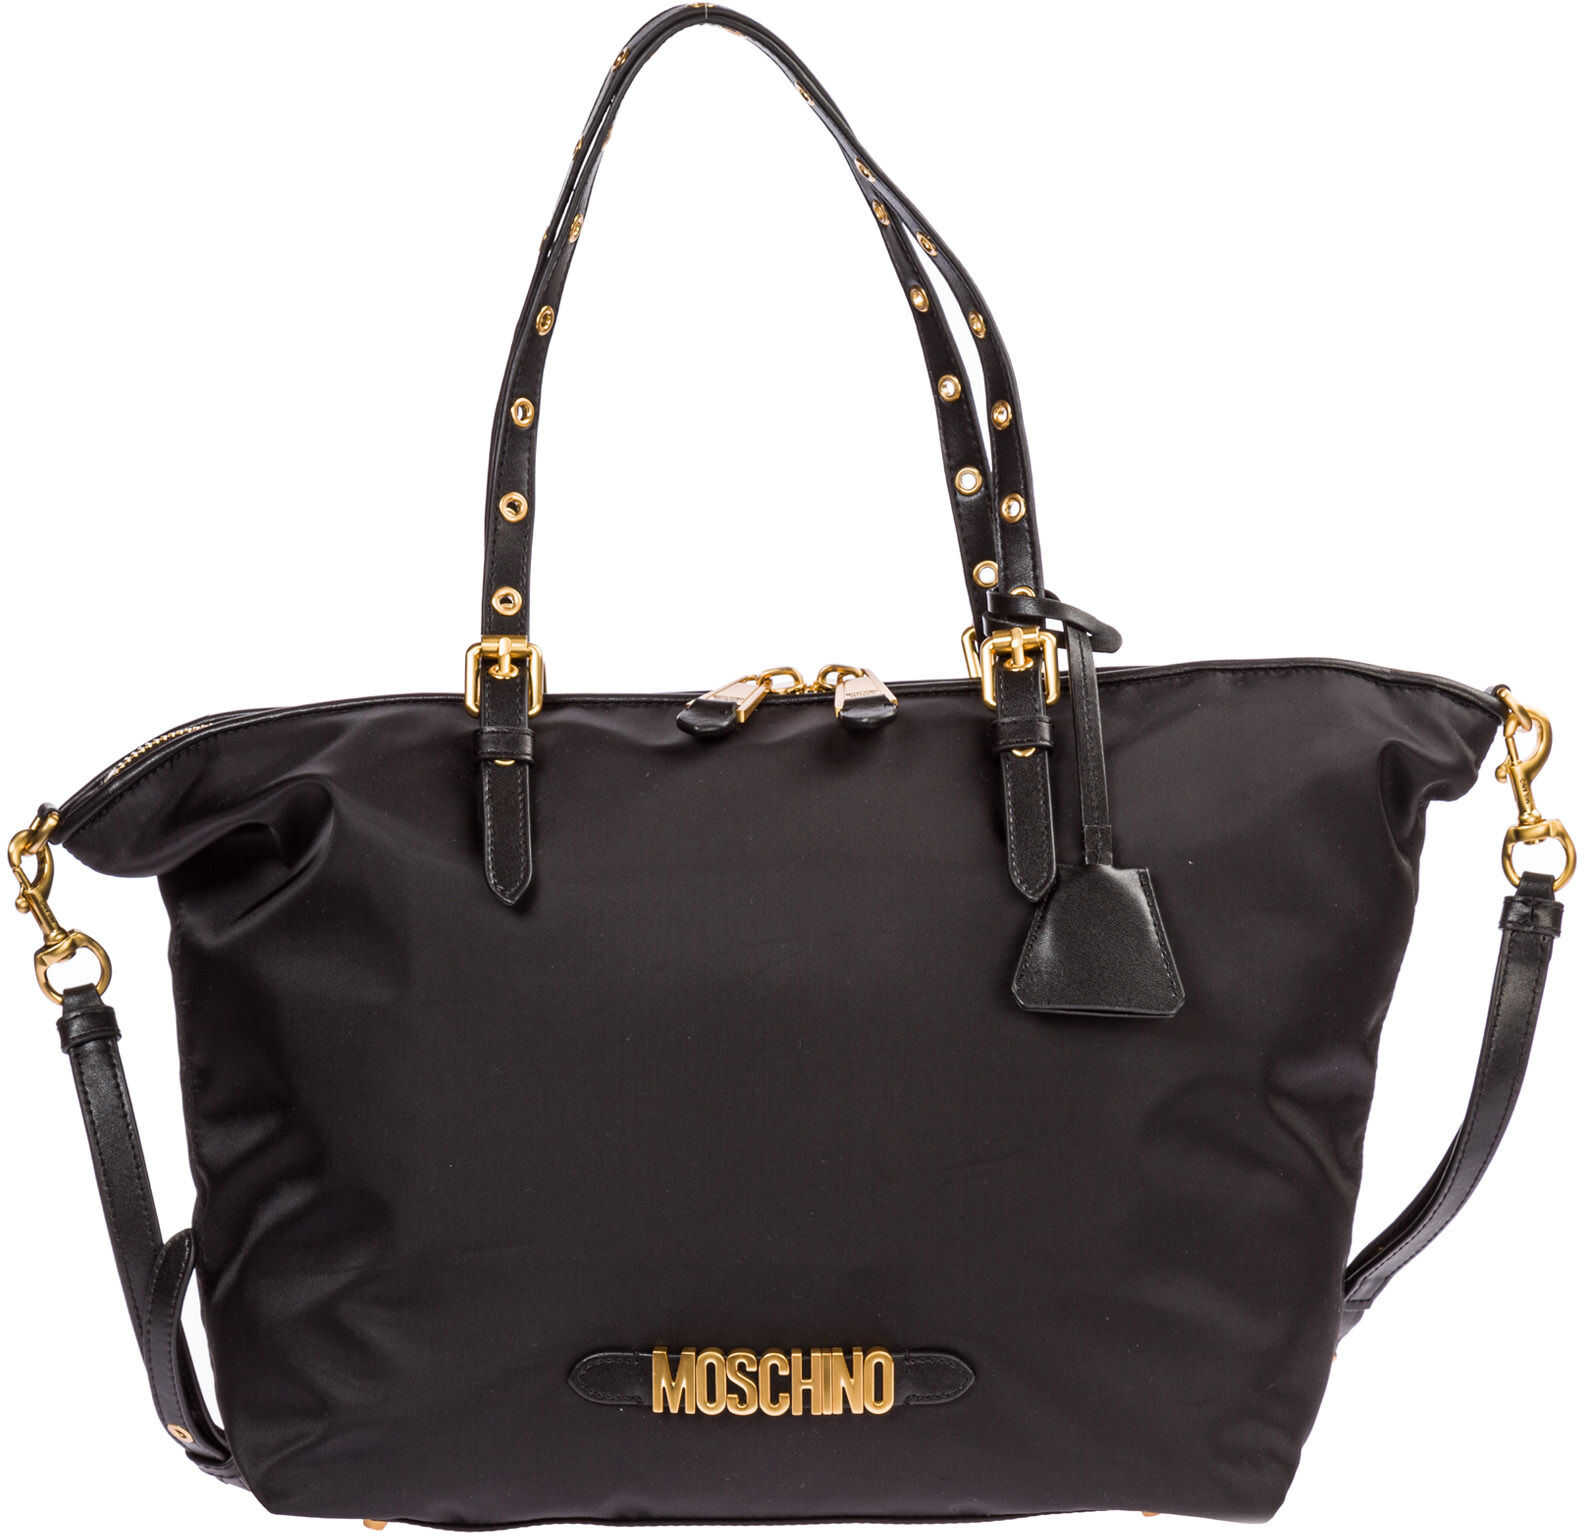 Moschino Shoulder Bag Black